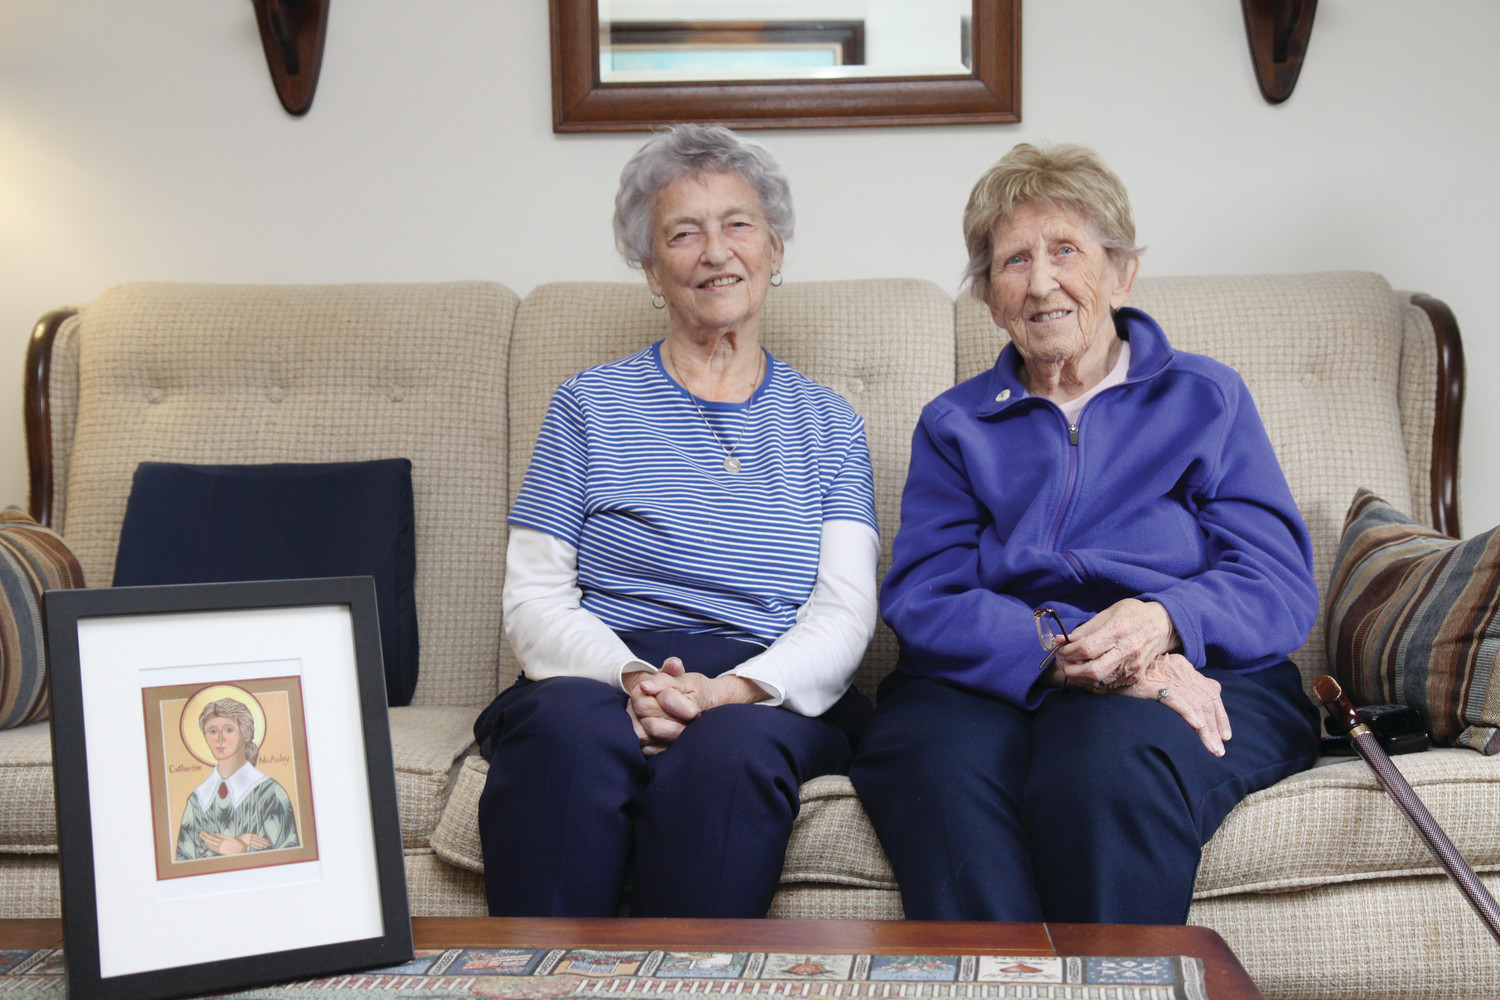 Sister Barbara Riley and Sister Fran Lynch are pictured in the Riverside apartment complex where they live. Though the Sisters of Mercy are retired from full-time ministry, they continue to promote their order's mission of service to those in need through prayer, advocacy and raising awareness of critical concerns.